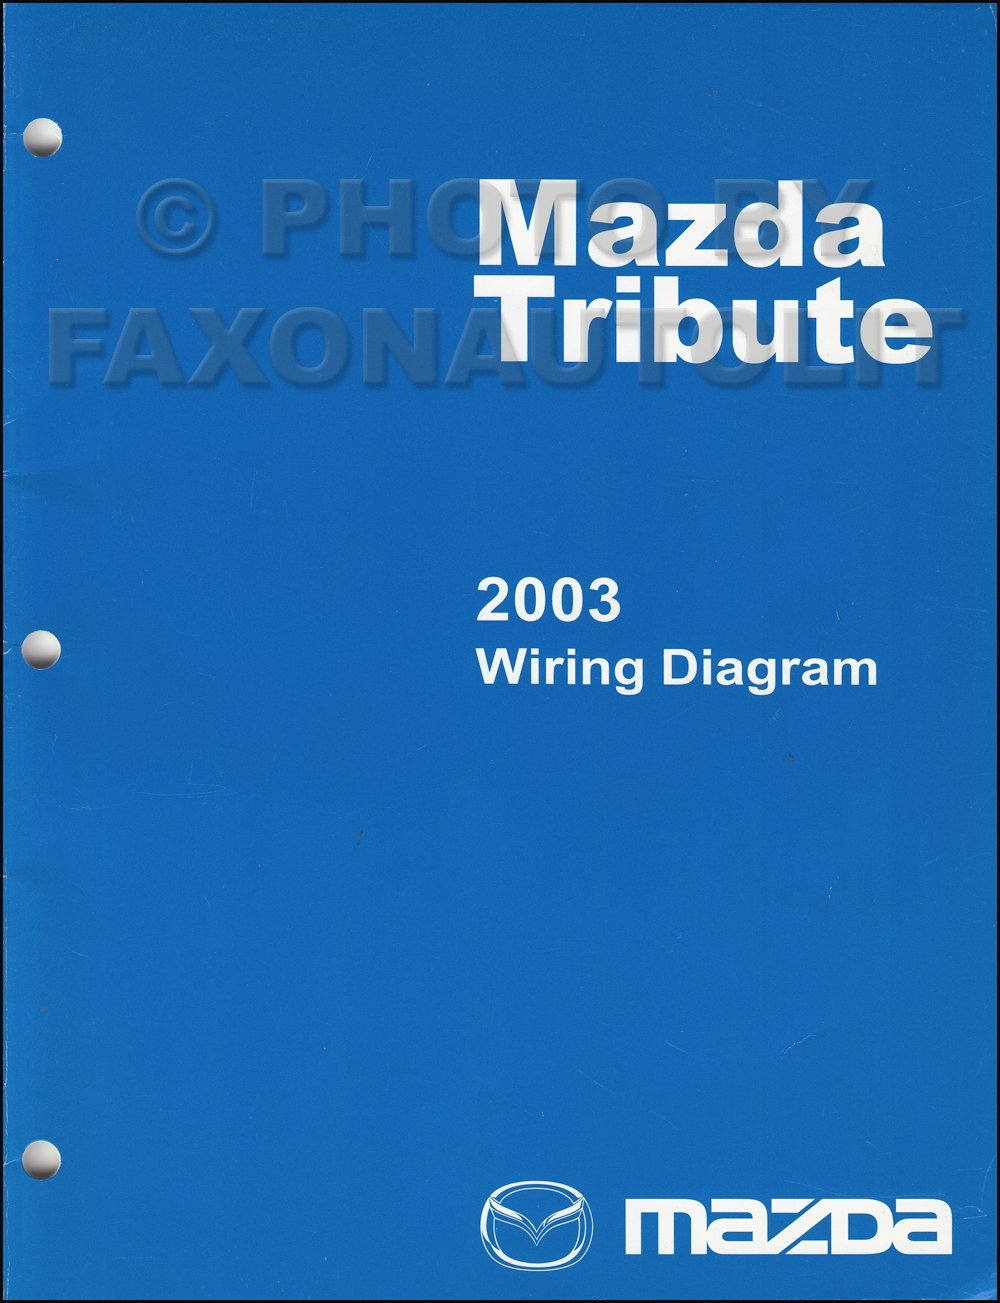 2003 Mazda Tribute Wiring Diagram Manual Original Mazda Amazon Com Books